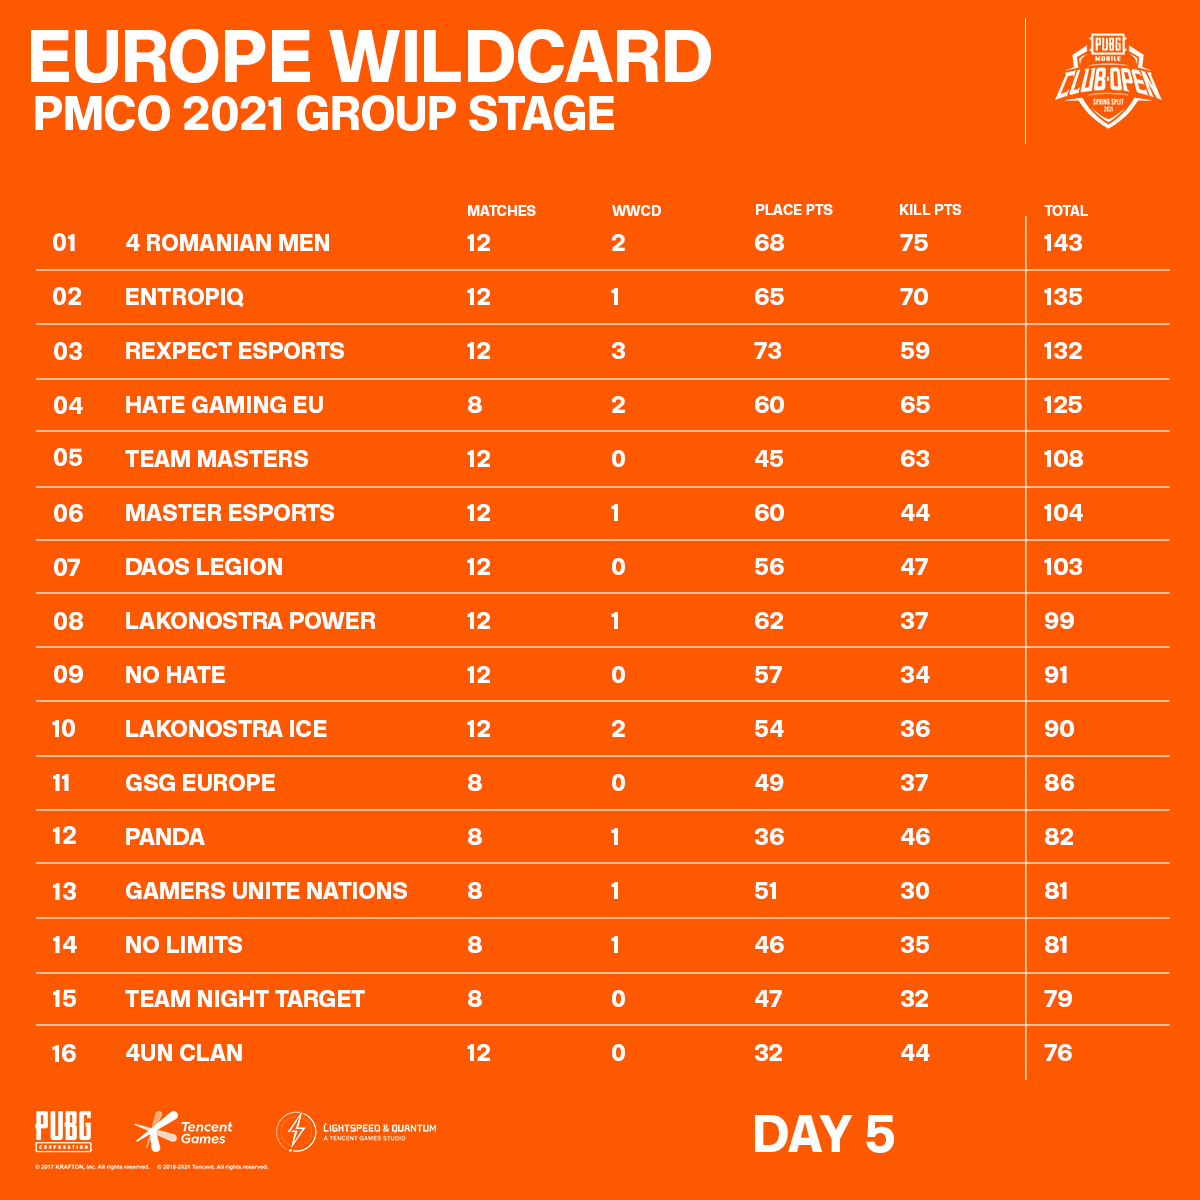 Europe Wildcard PMCO 2021 Group Stage Day 5 Standings